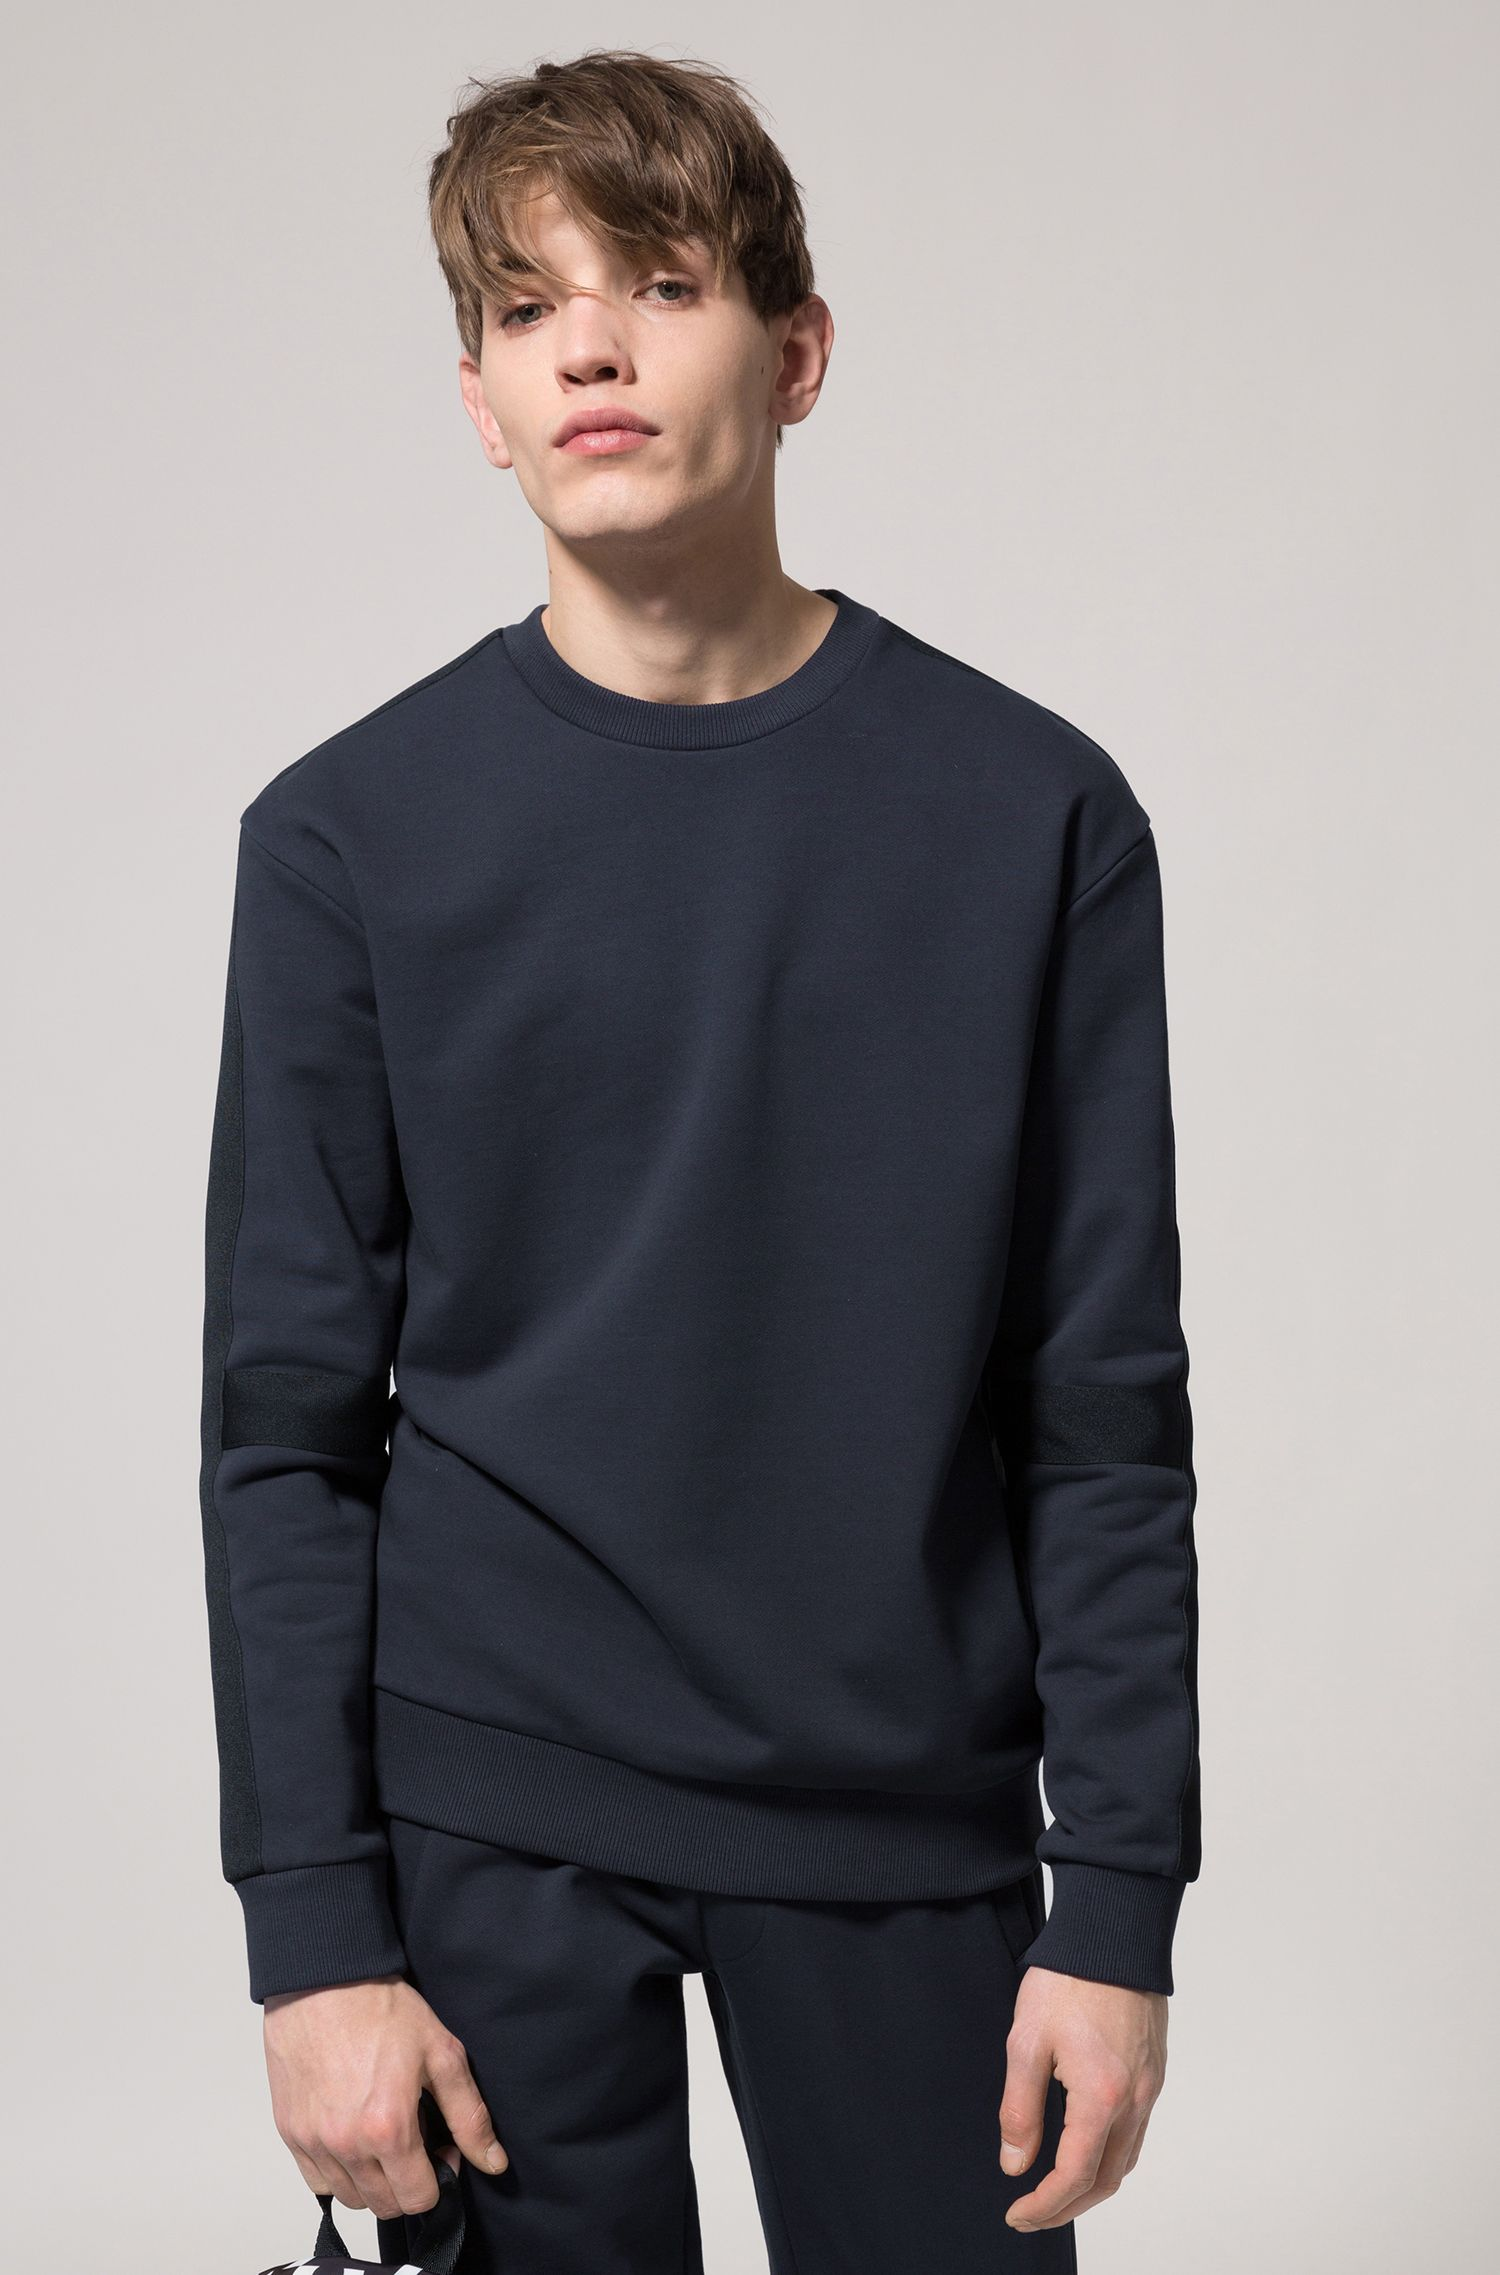 Oversized-fit sweatshirt with tone-on-tone panels